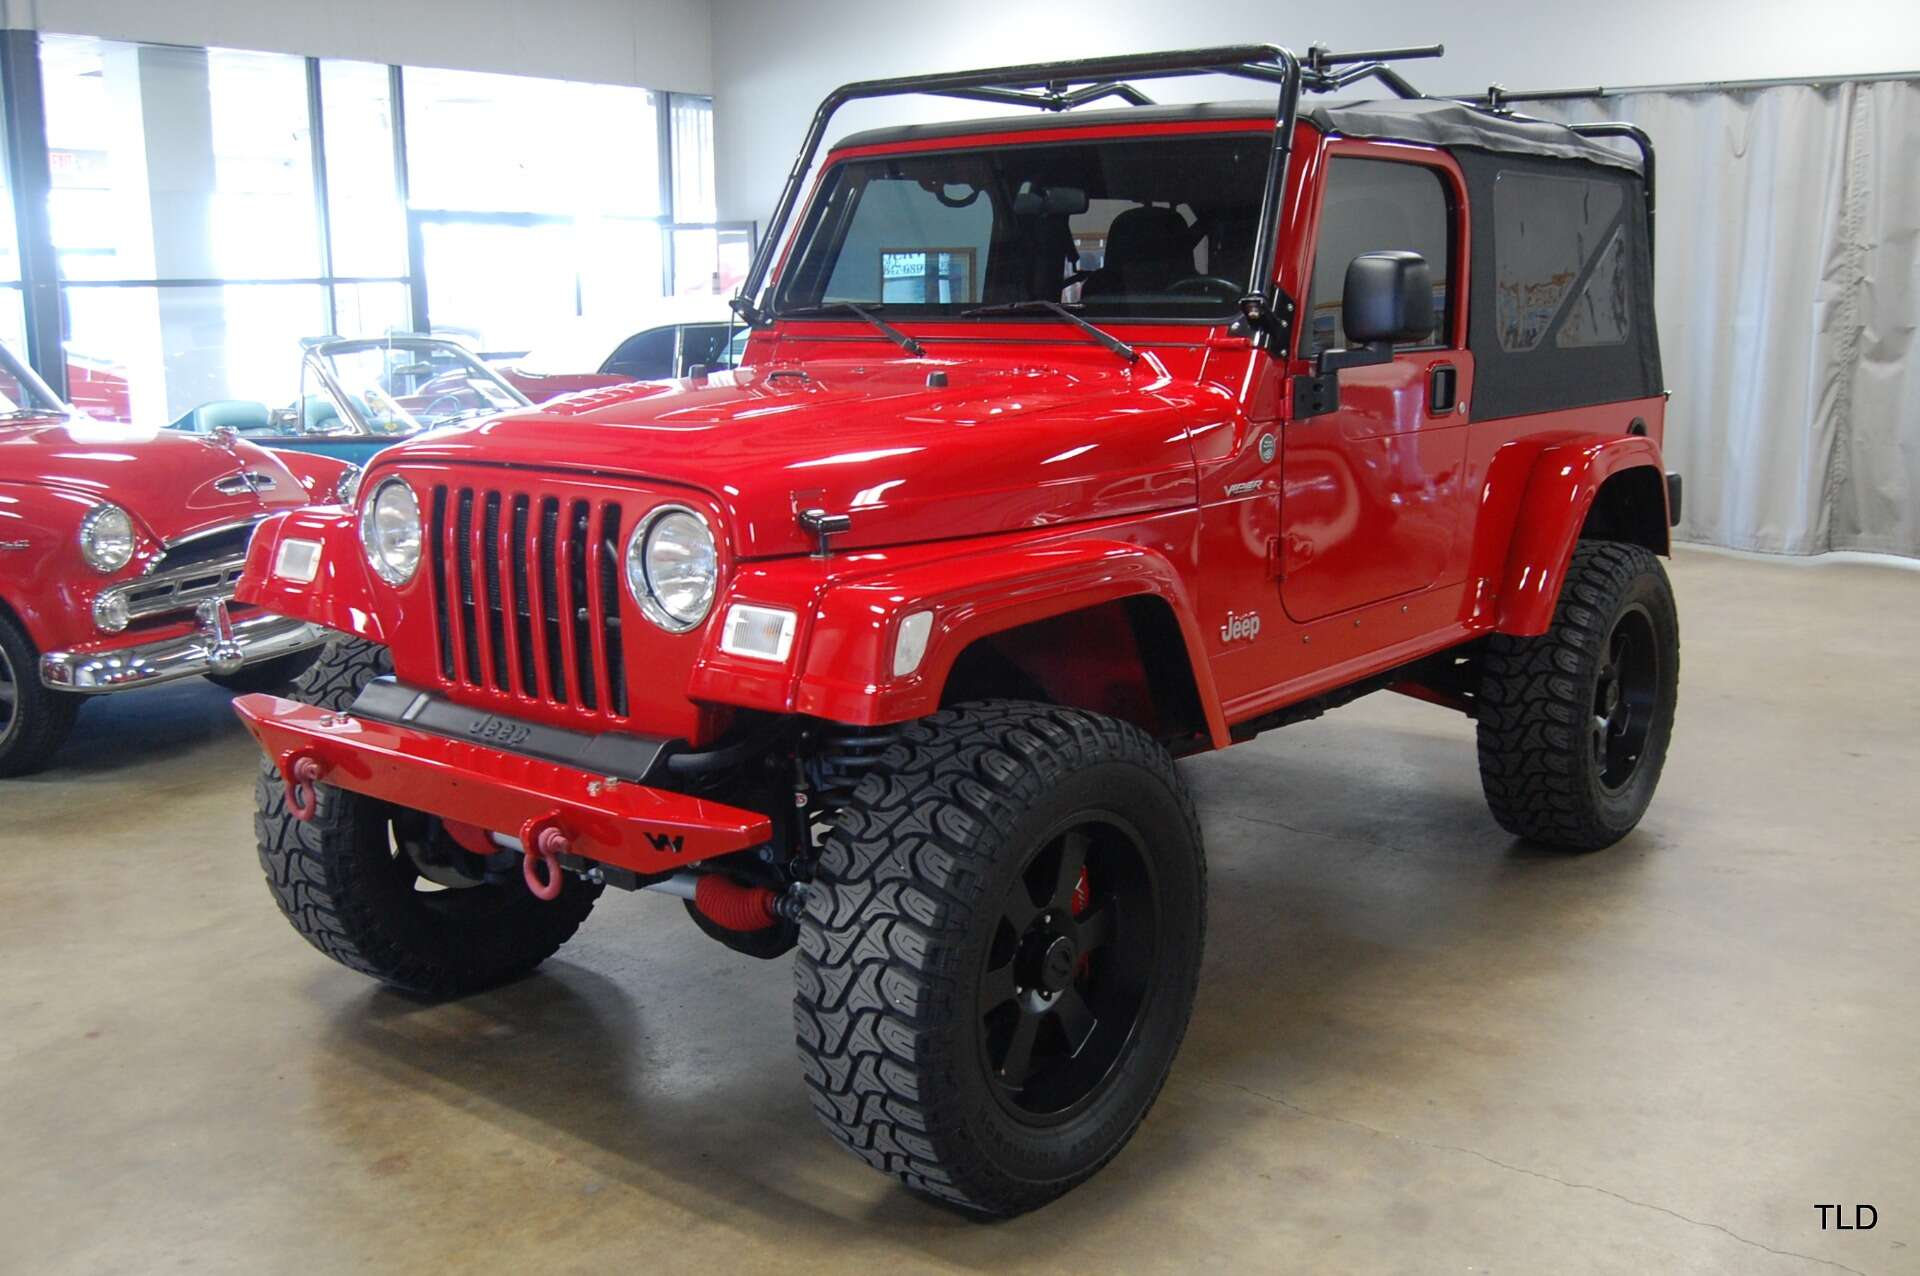 This Jeep Wrangler Has Viper Srt 10 Power The Drive Dodge Wiring Harness Ebay Last Detail